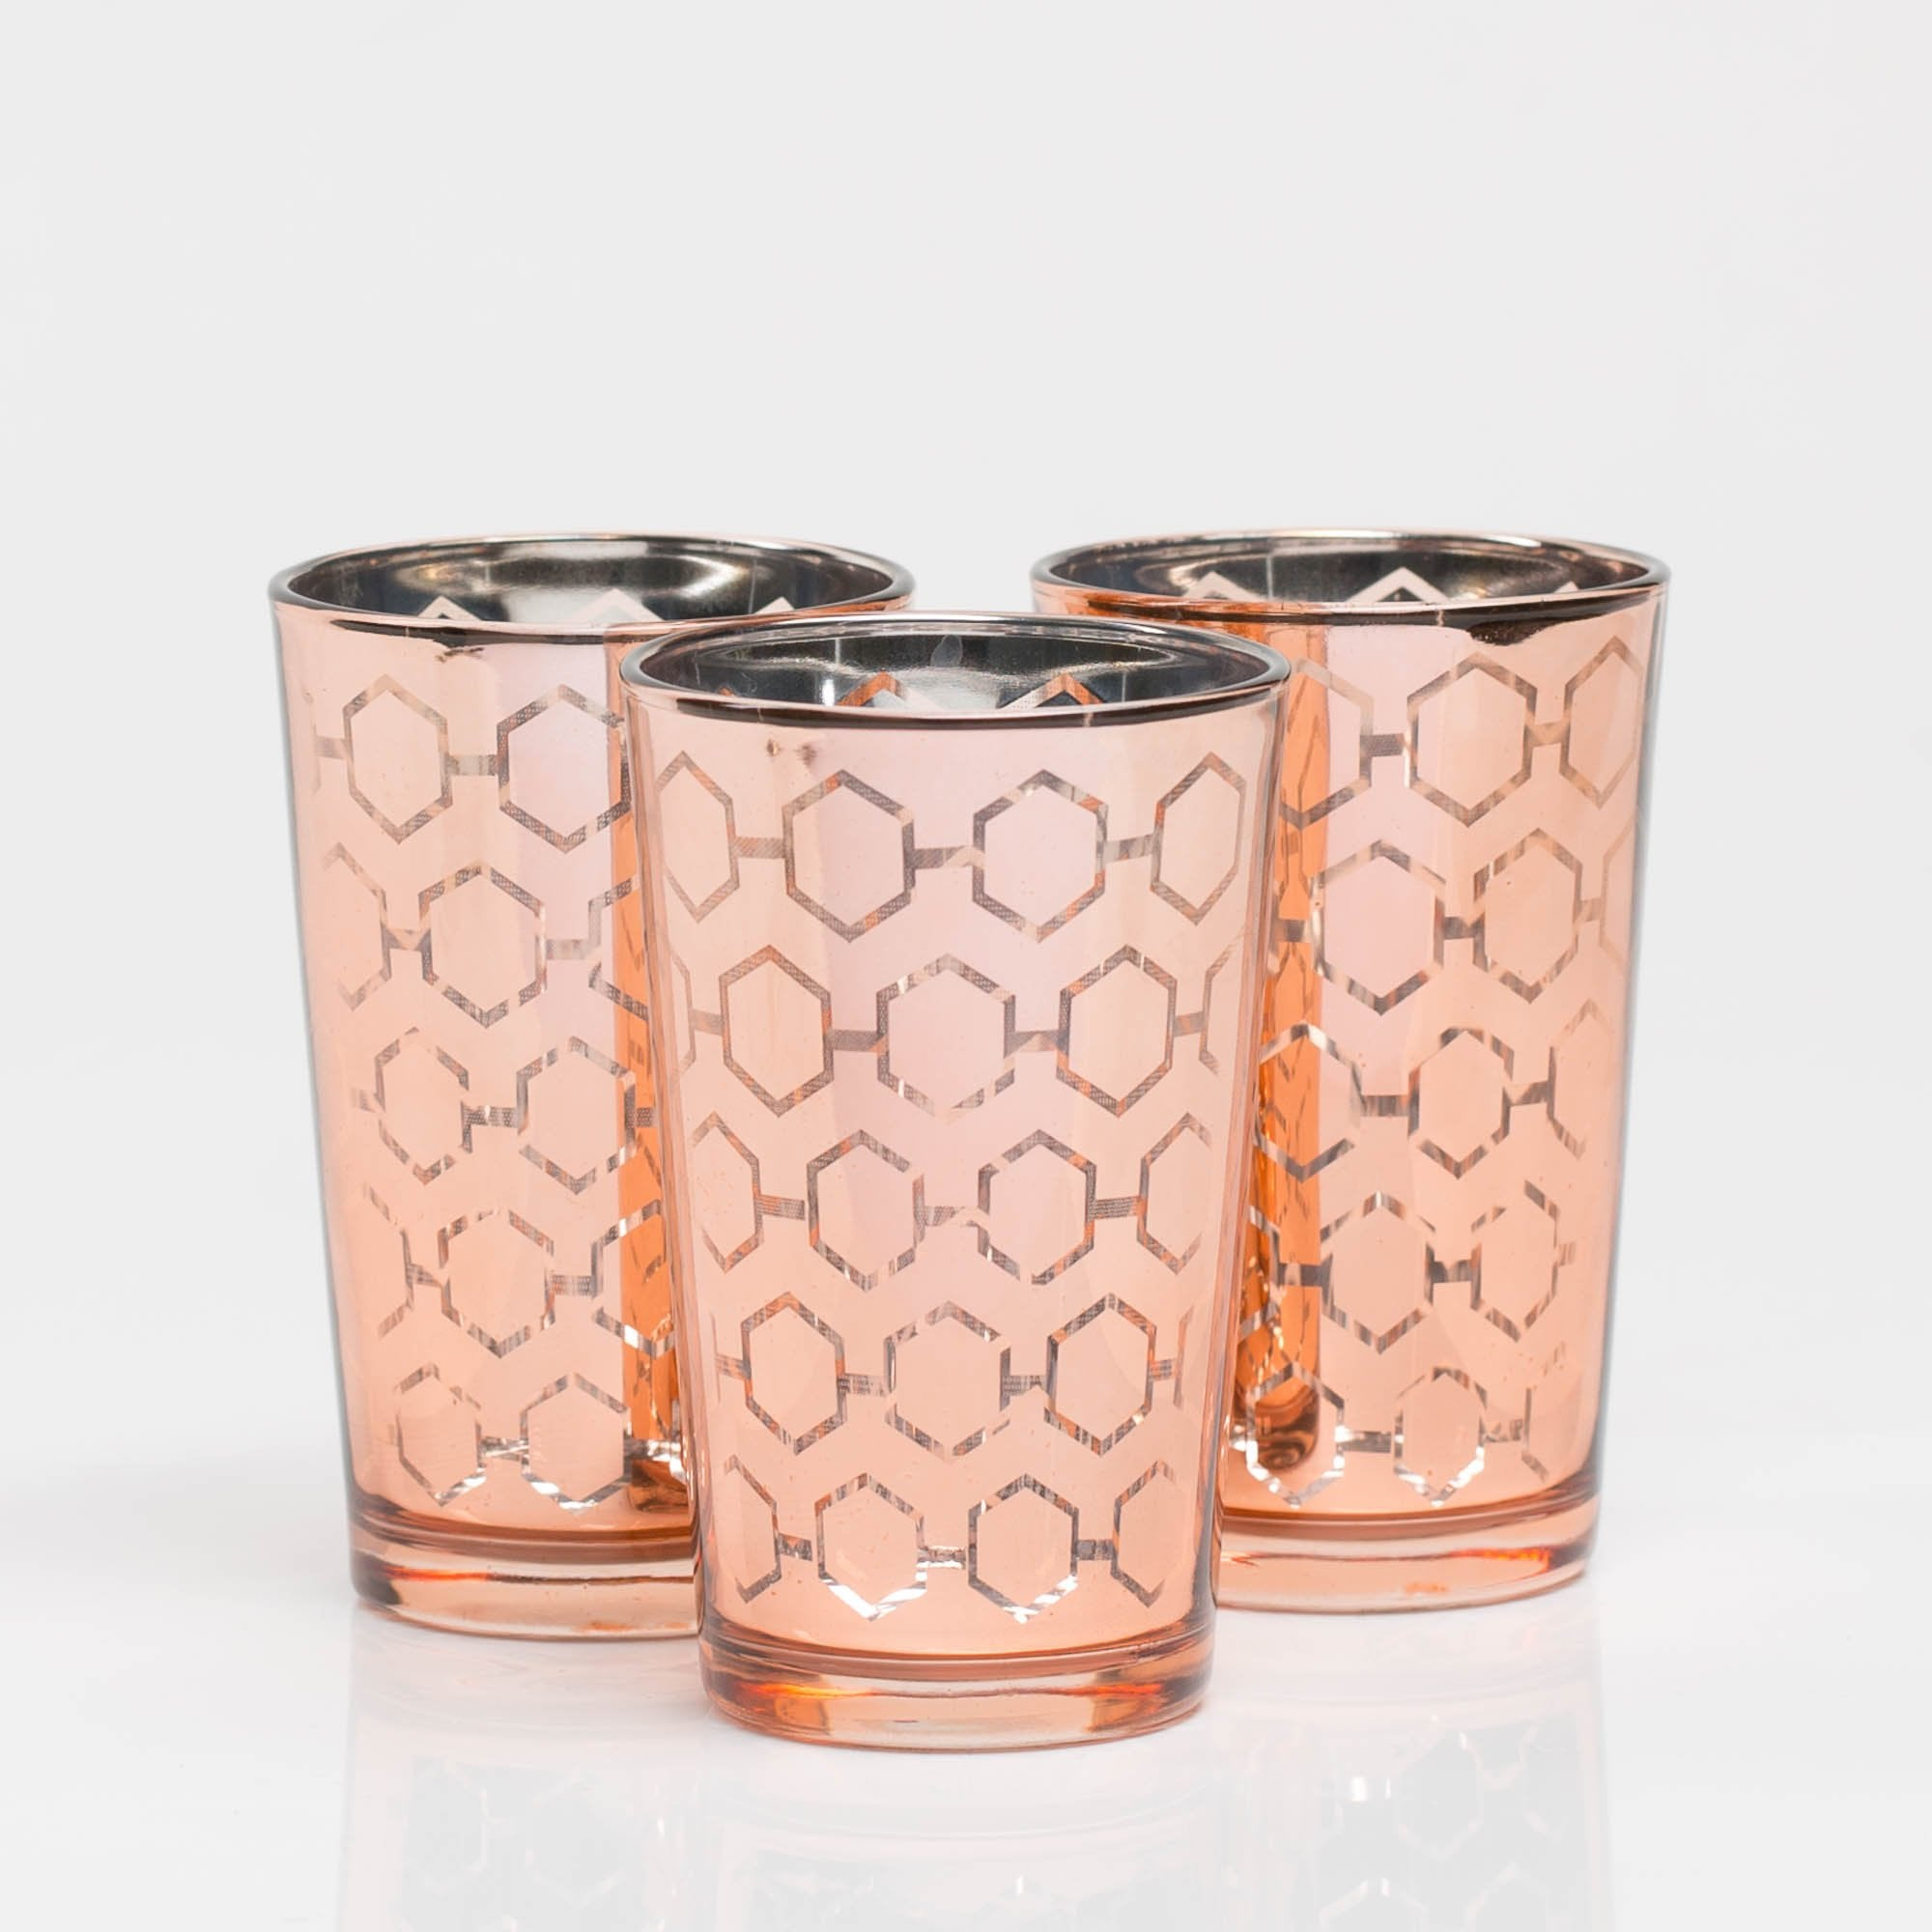 richland rose gold hexagonal glass holder large set of 6